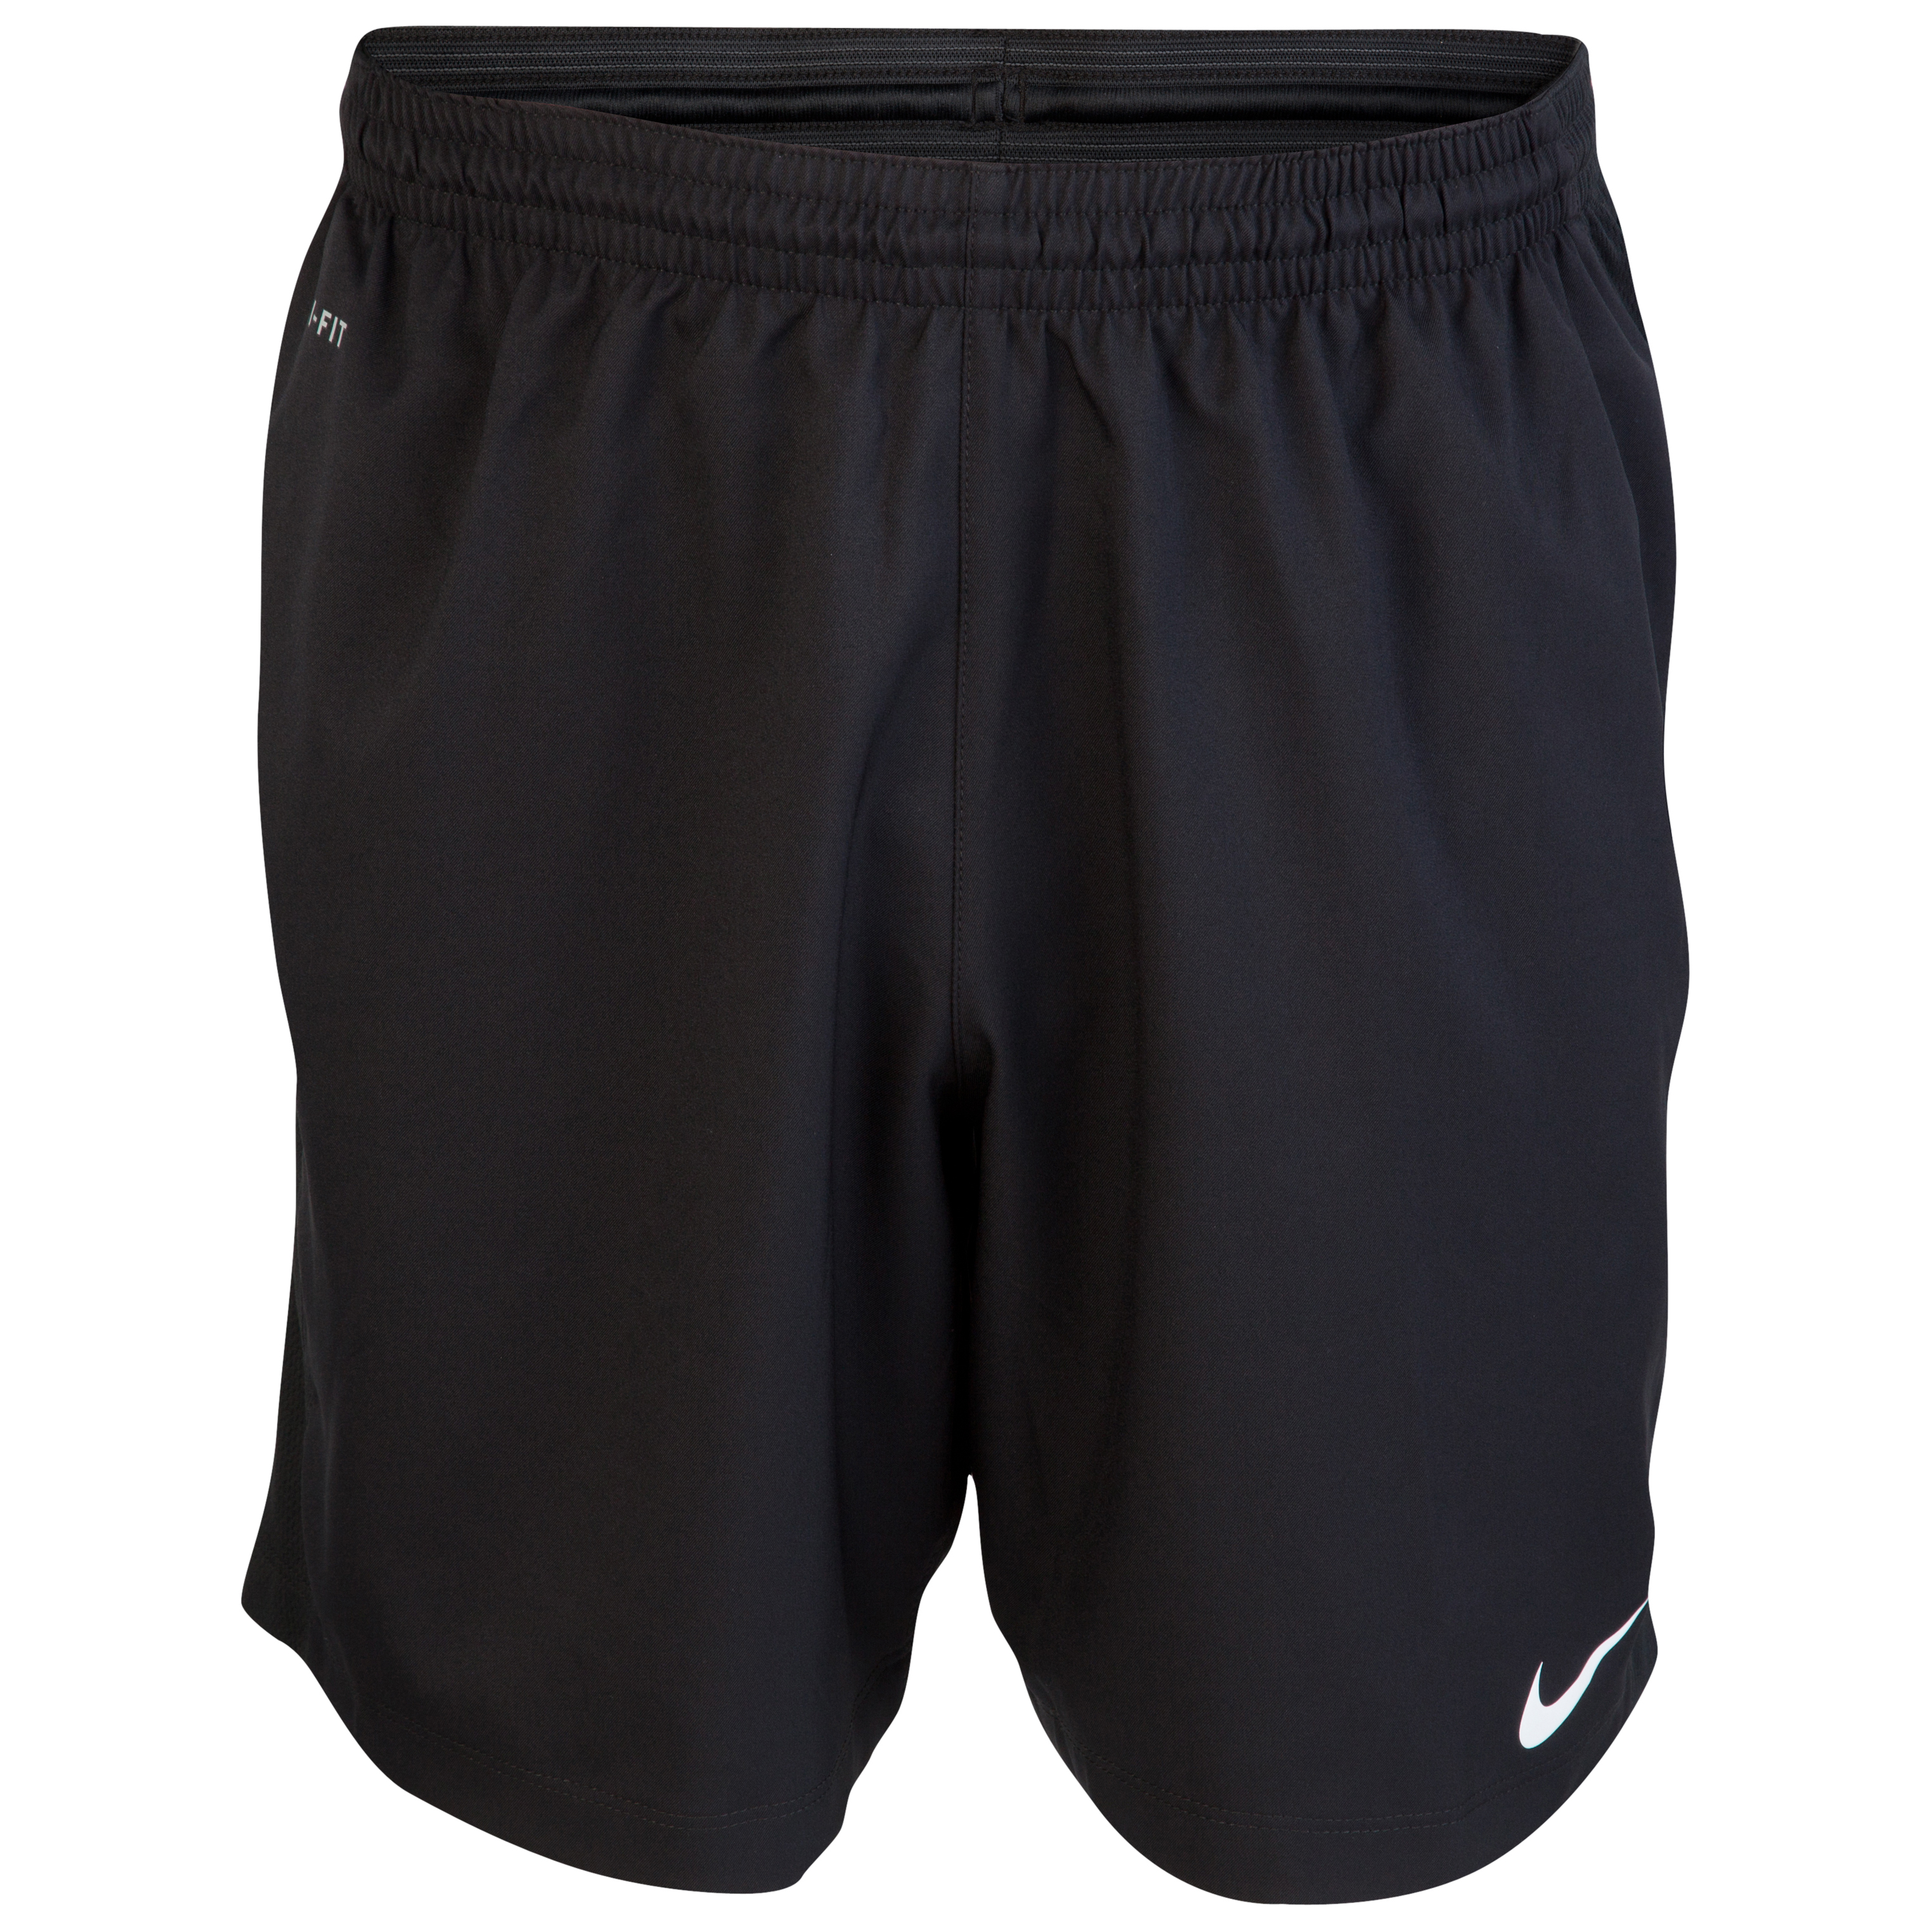 Nike Training Short - Black/White - Kids